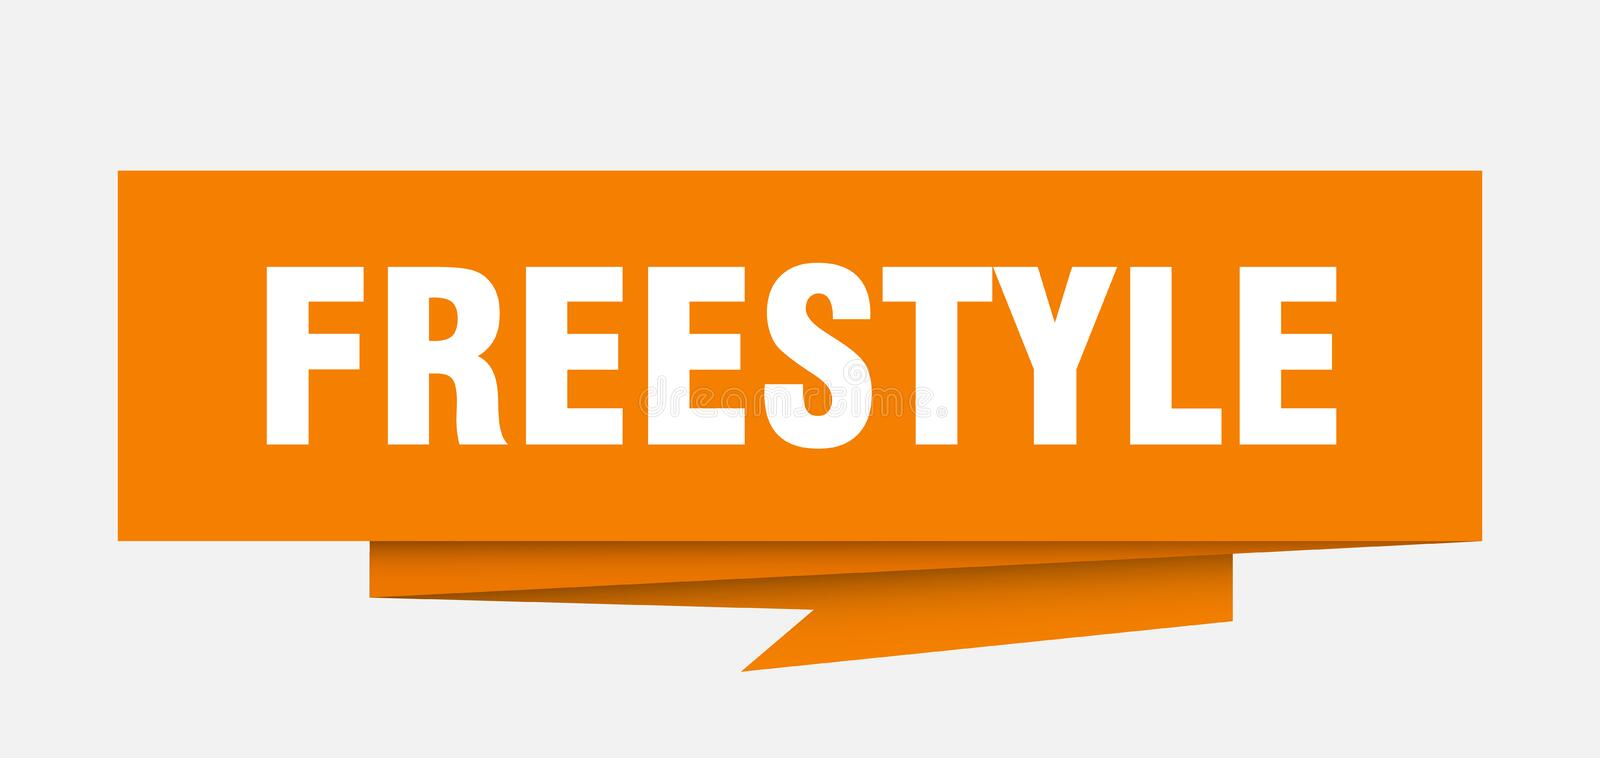 freestyle libre illustration